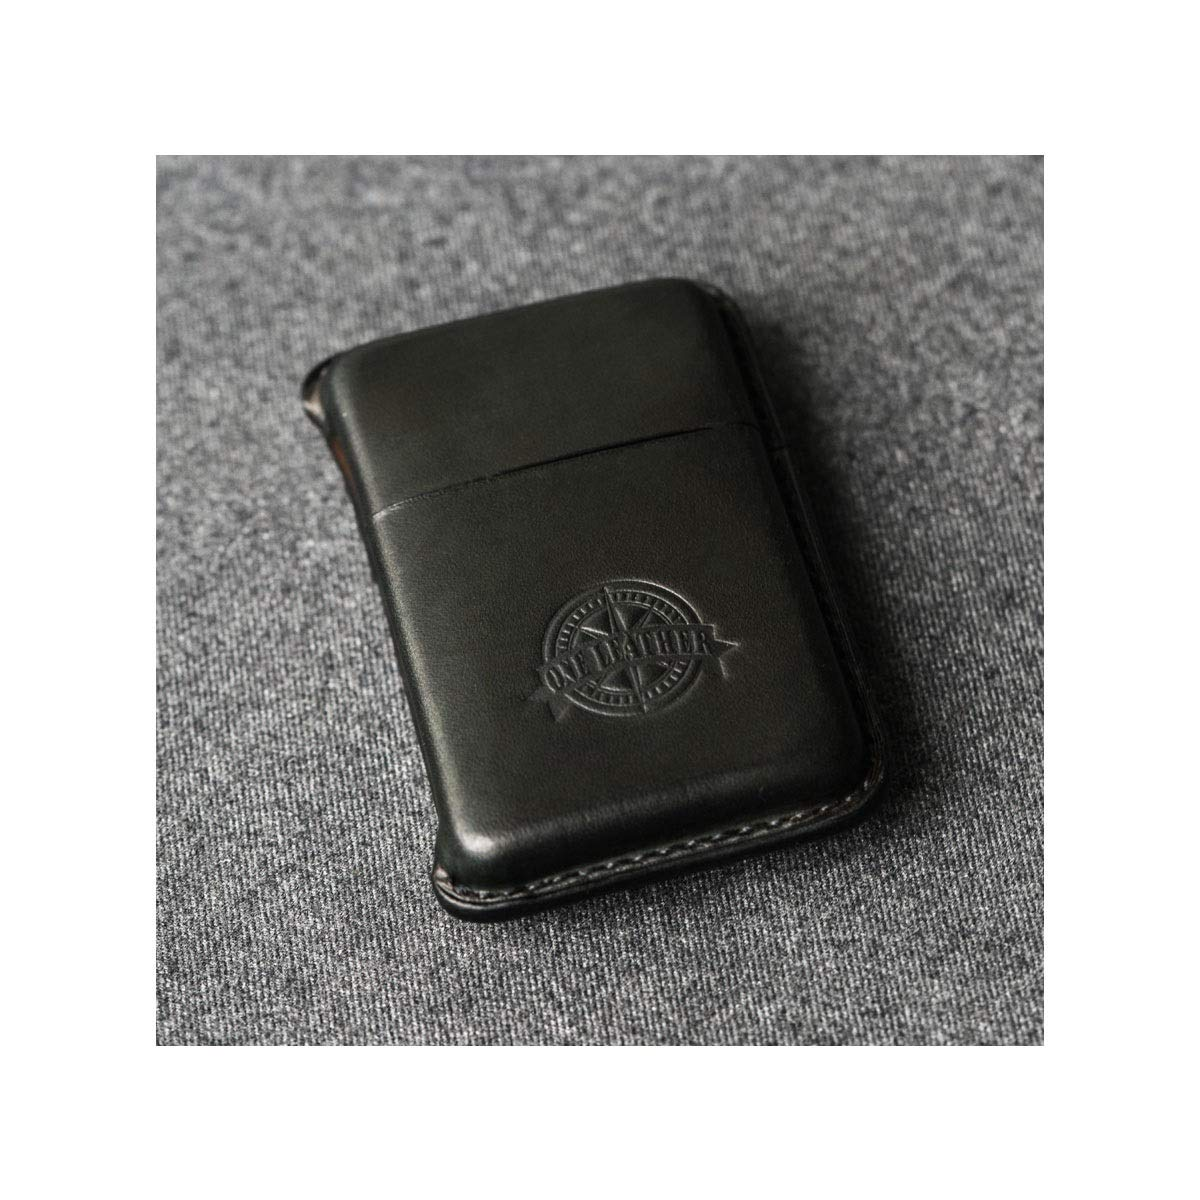 ZHONGYUE Leather Handmade Cigarette Case, Creative Gift Cigarette Case, Portable Cigarette Case, Can Hold 10 Cigarettes, Black, Green, Brown, Beige Unique Design, Sturdy and Lightweight.